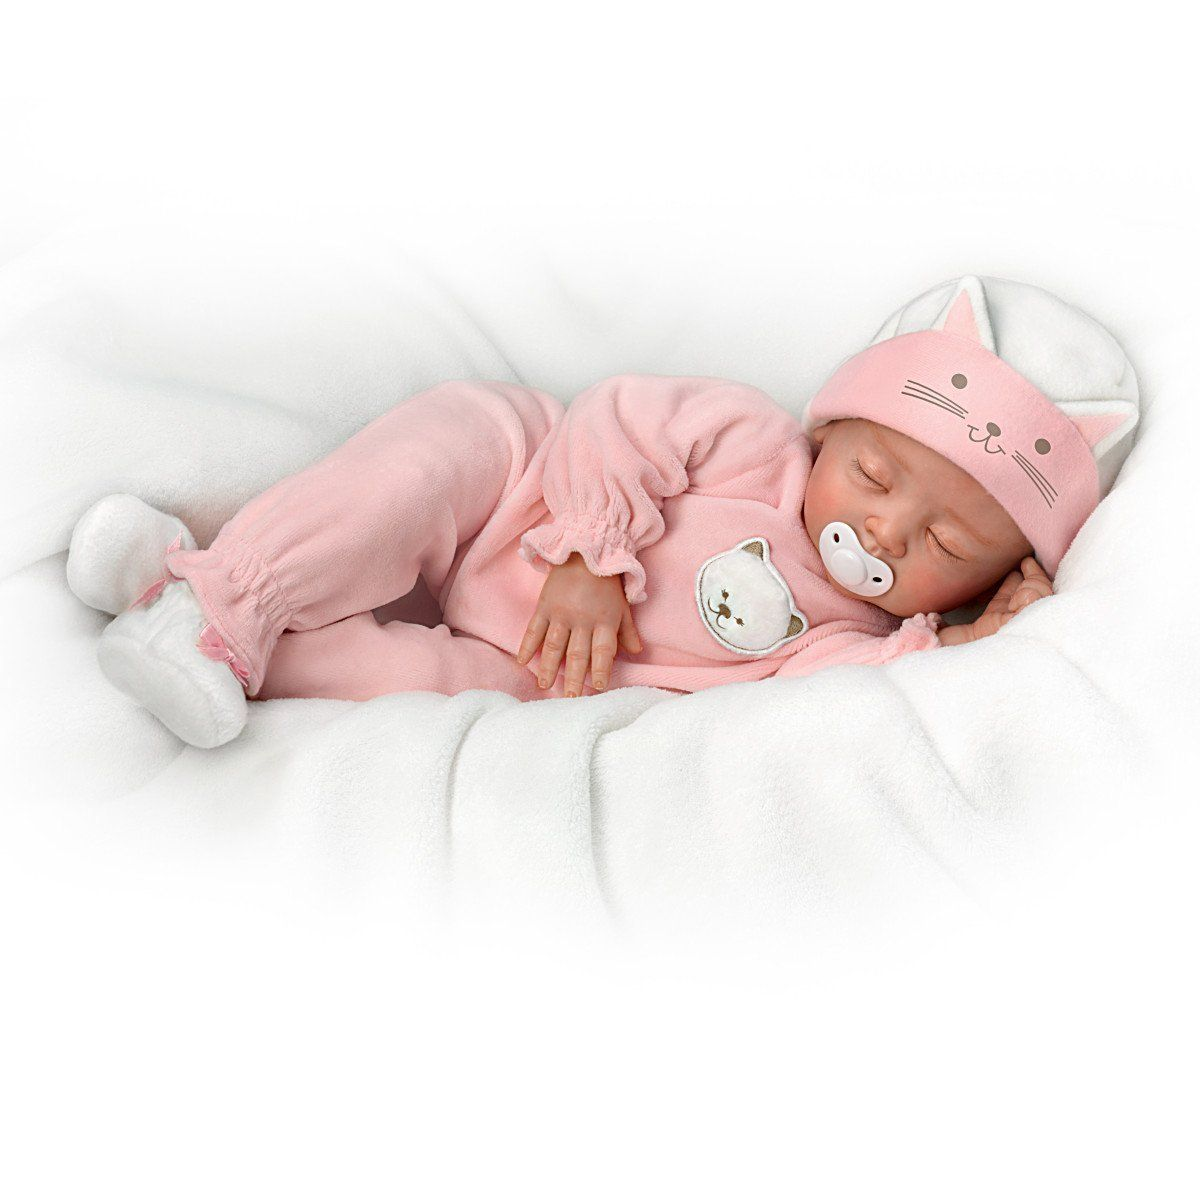 Amazon Com Katie My Sweet Little Kitten So Truly Real Lifelike Baby Girl Doll By The Ashton Drake Galleries Baby Girl Dolls Life Like Baby Dolls Baby Dolls